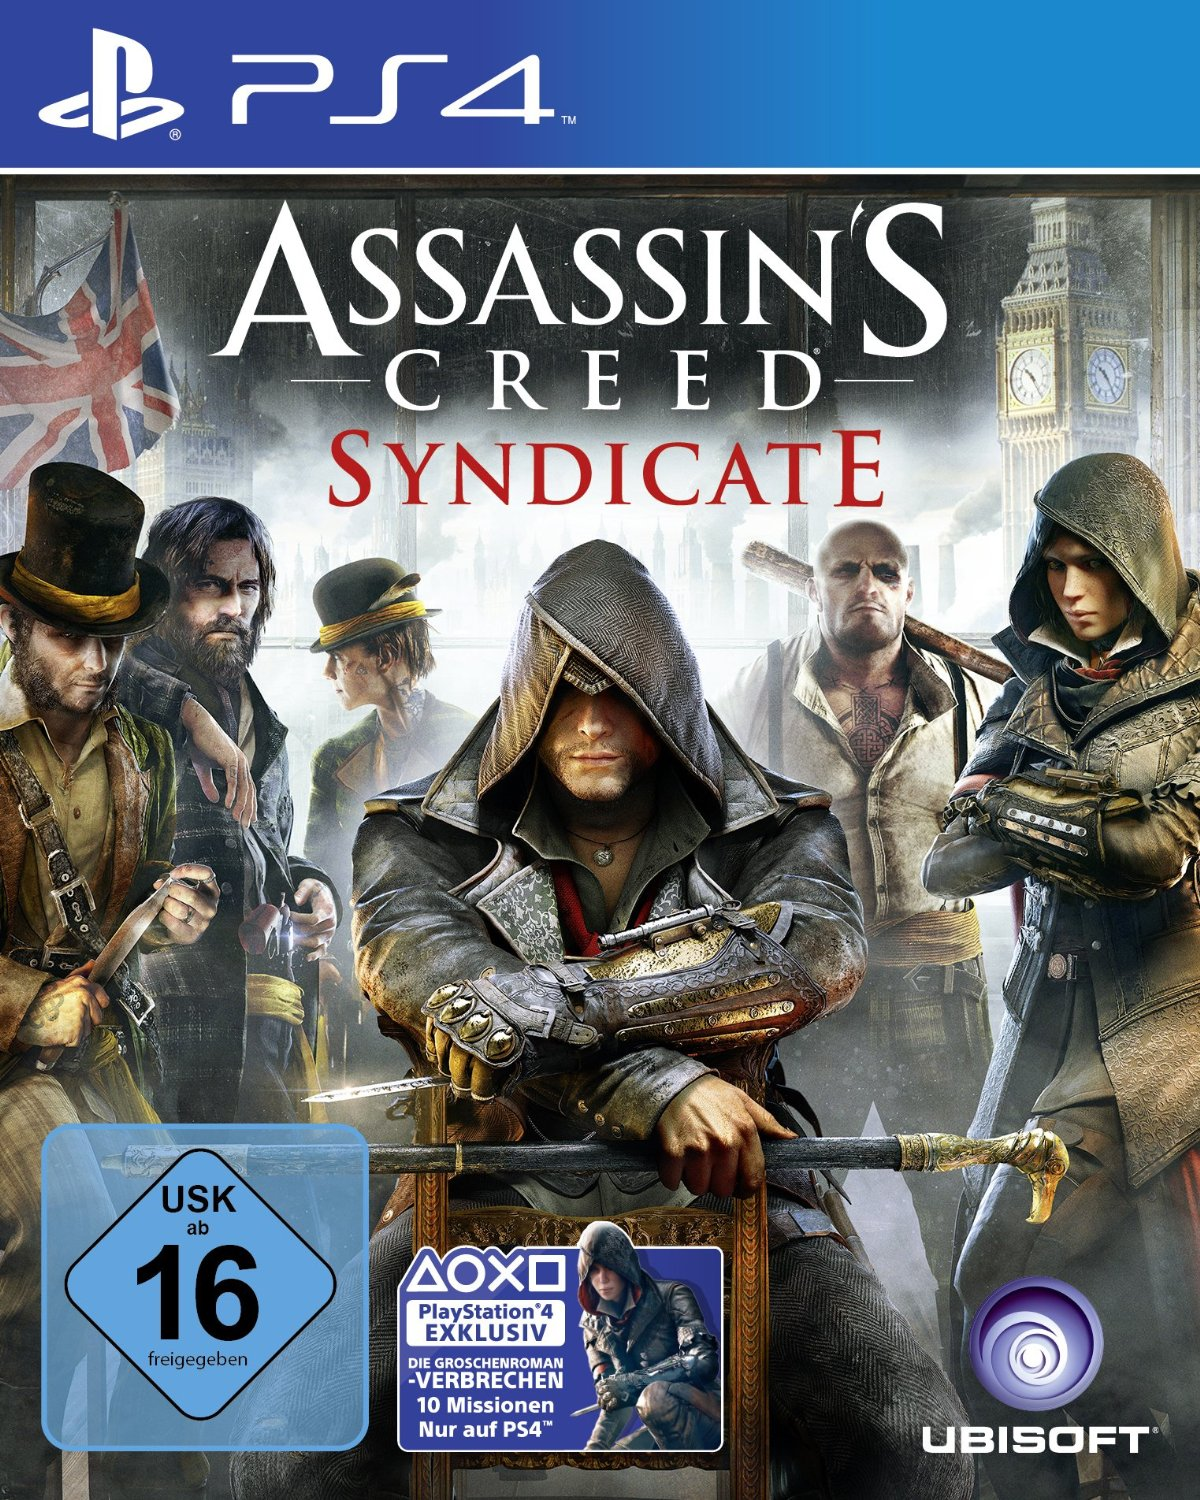 Assassins Creed Syndicate - Special Edition